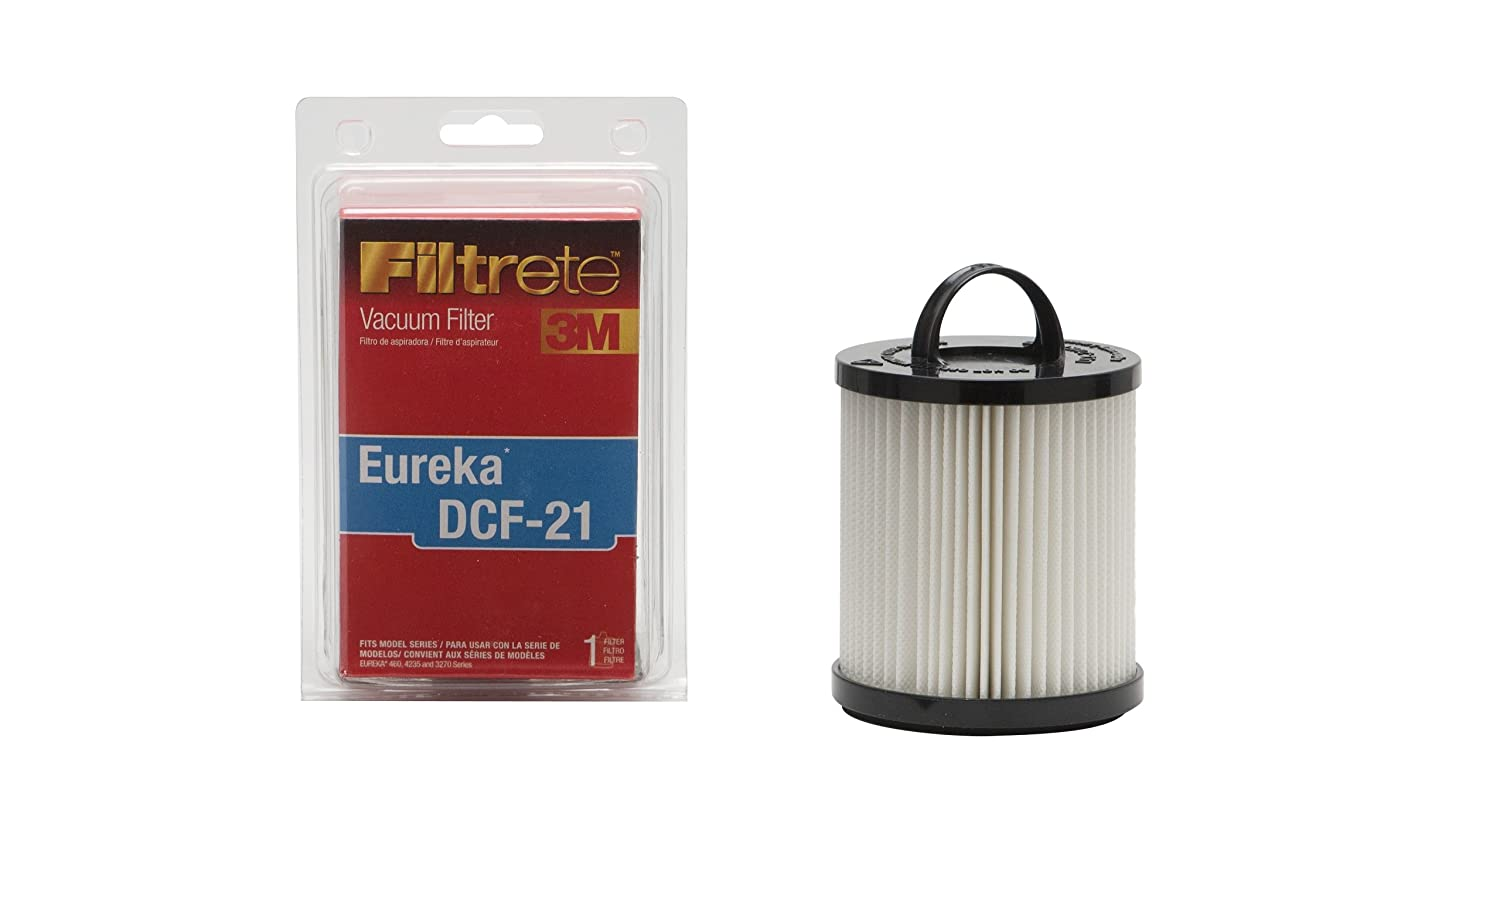 3M Eureka DCF-21 Allergen Vacuum Filter, 1, Red